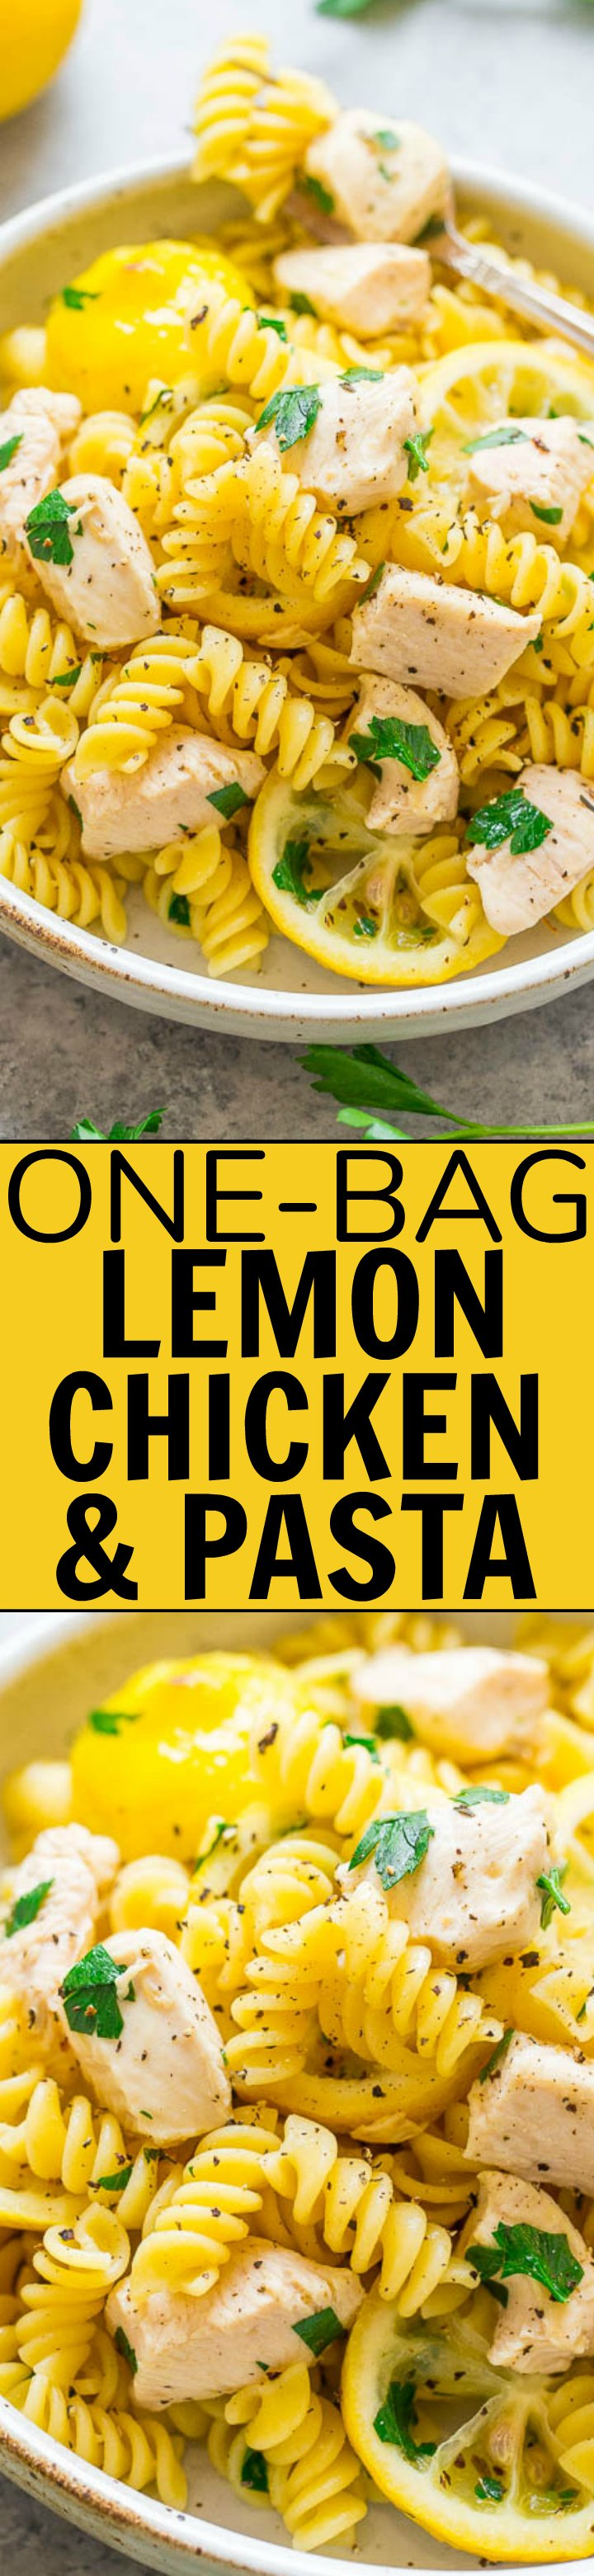 One-Bag Lemon Chicken and Pasta - An EASY lemon chicken and pasta recipe that's family-friendly and perfect for busy weeknights!! Everything cooks in ONE bag! The chicken is juicy, the pasta is tender, and cleanup is a breeze!!